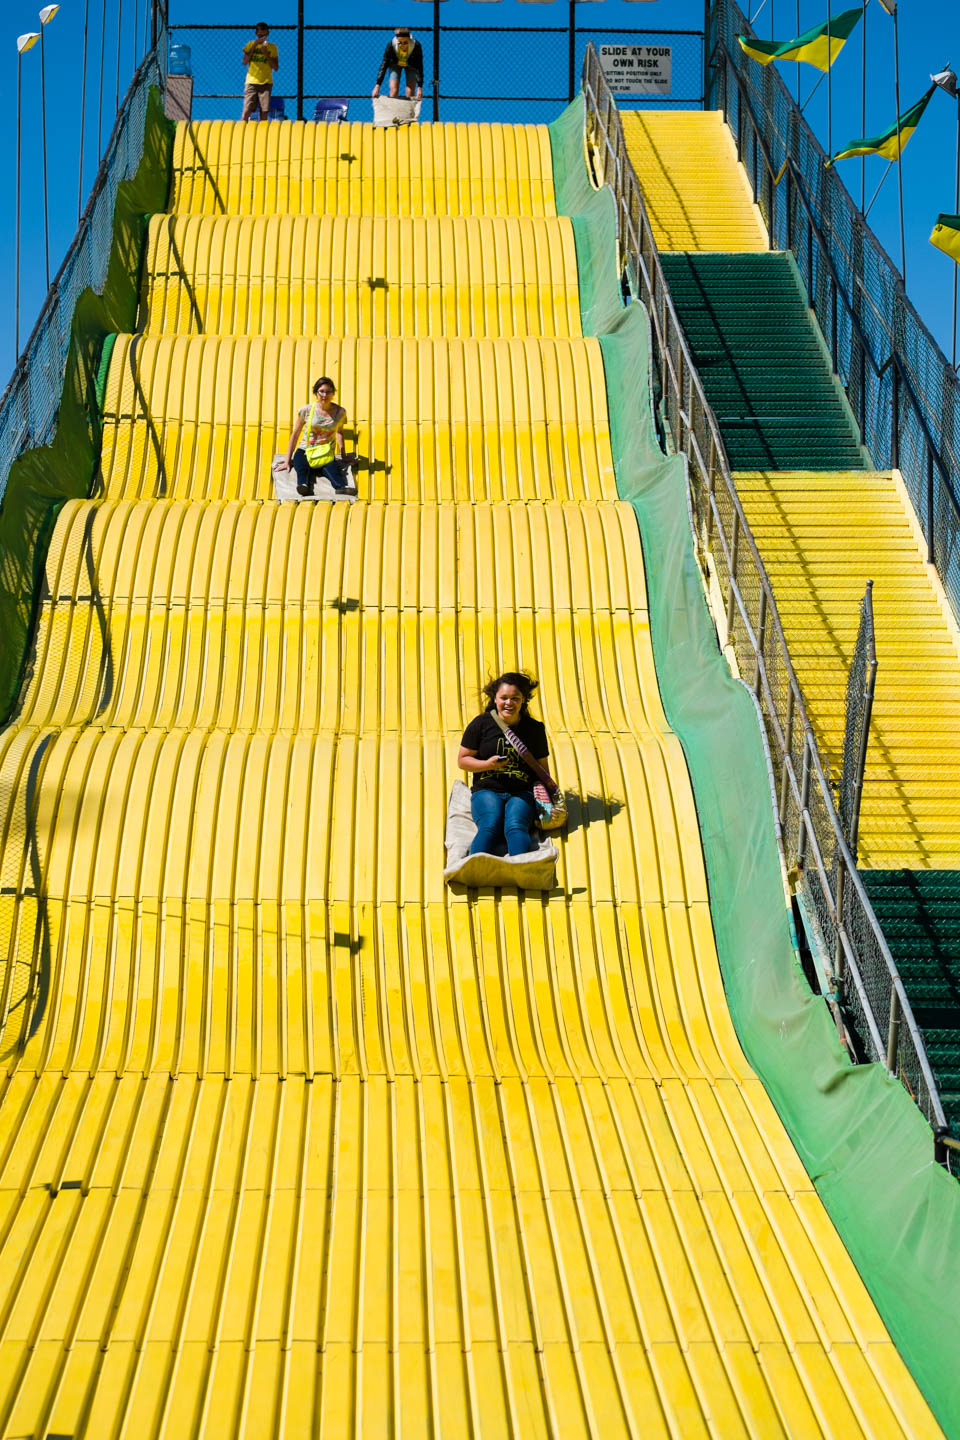 Super slide at the Utah State Fair